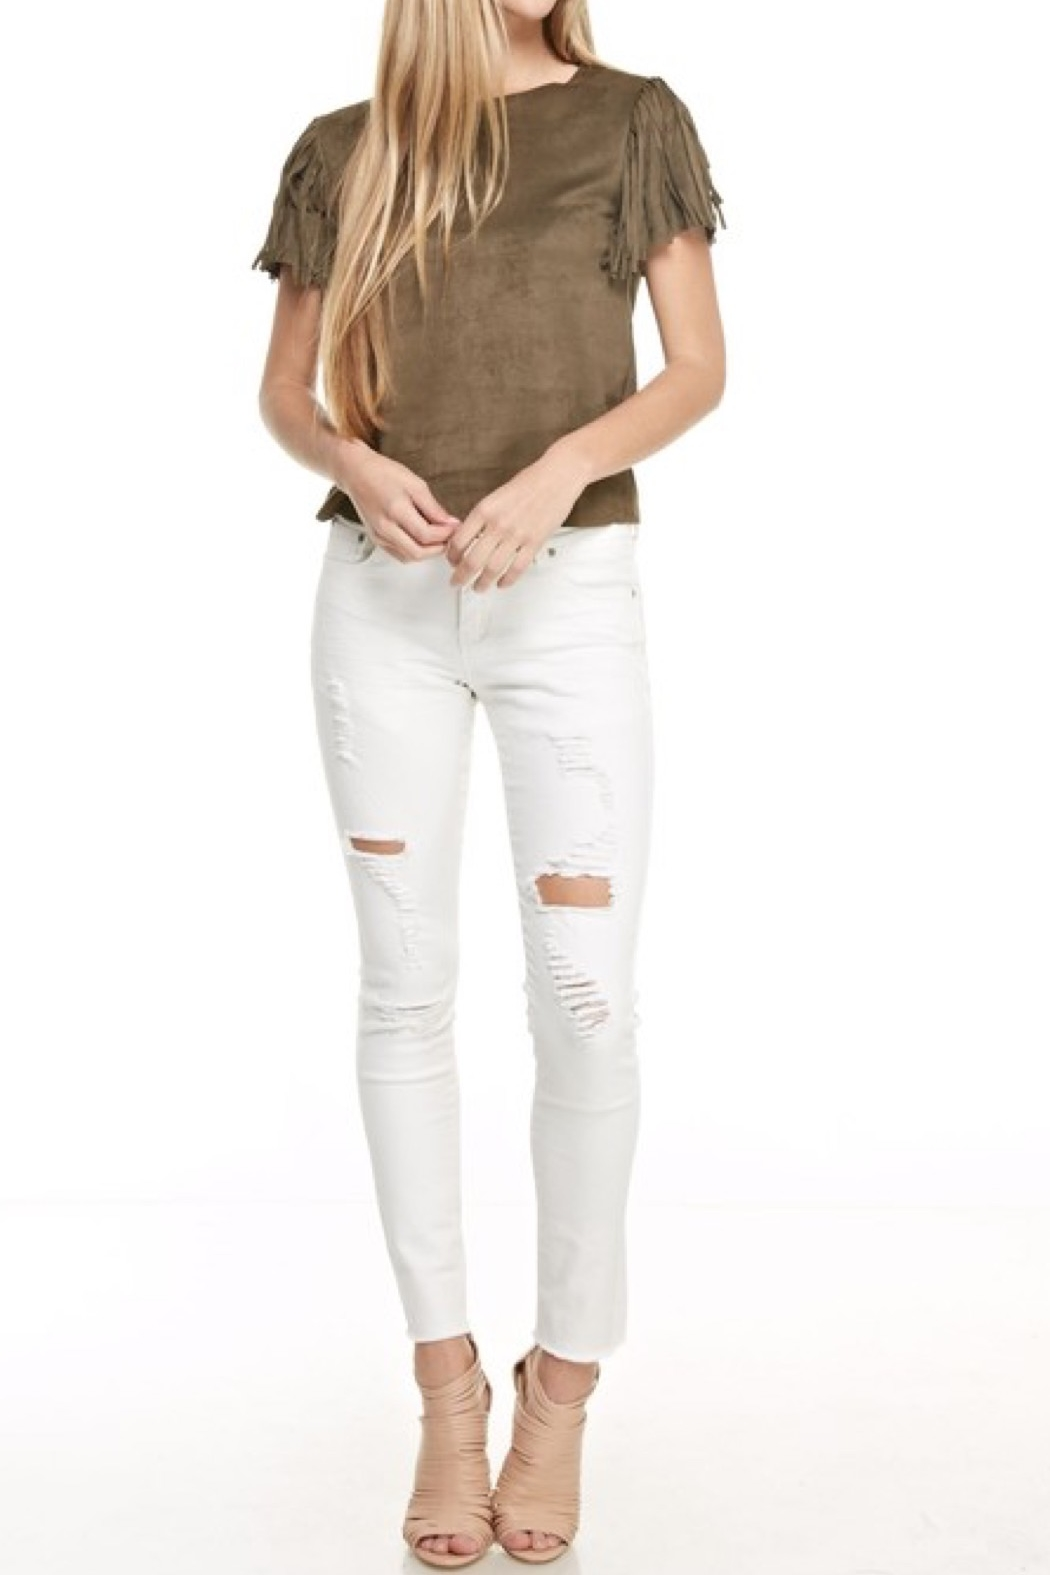 Monkey Ride Jeans Ripped Skinny Jeans - Main Image